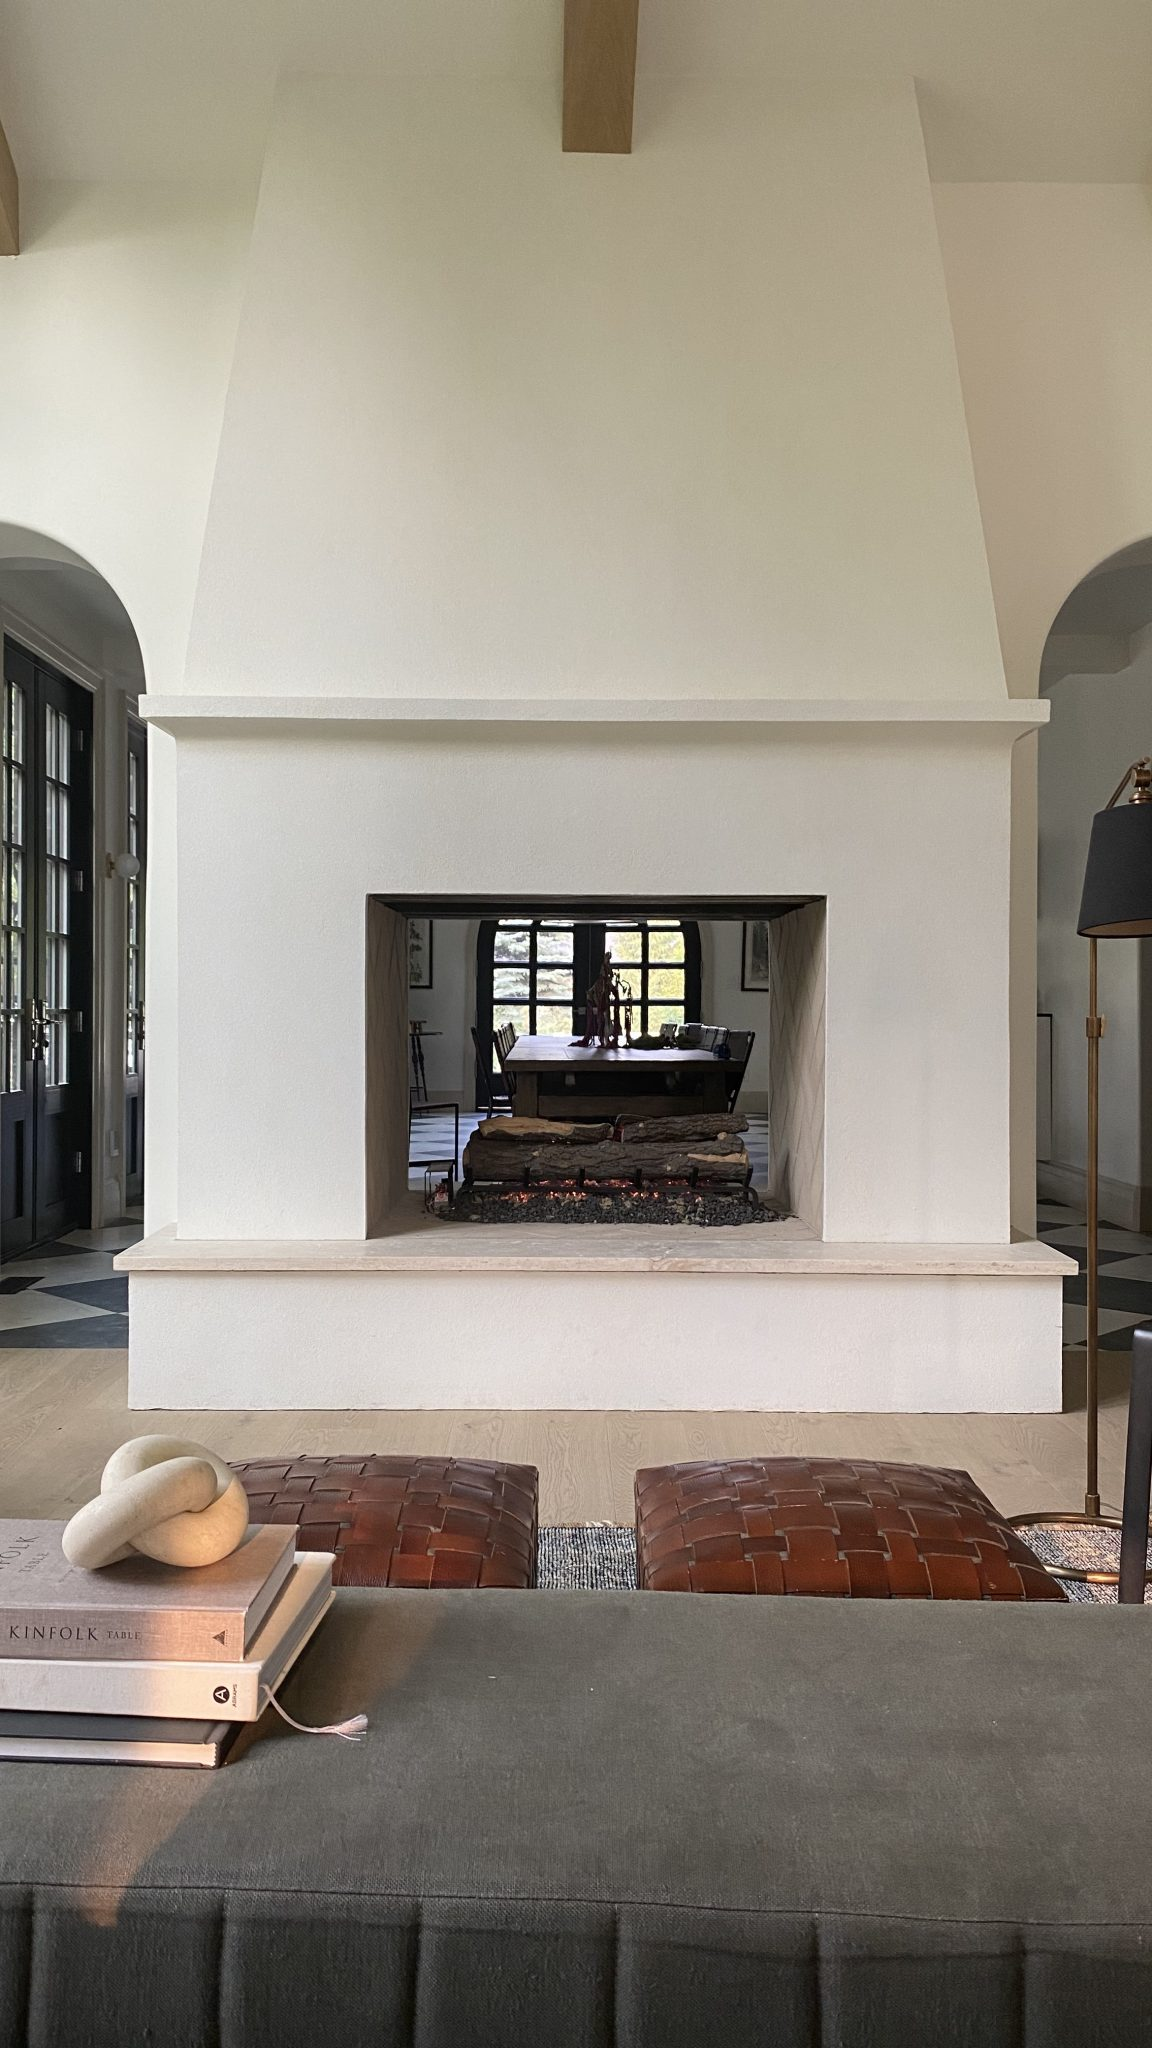 The 10 options we're considering for above the fireplace   Chris ...